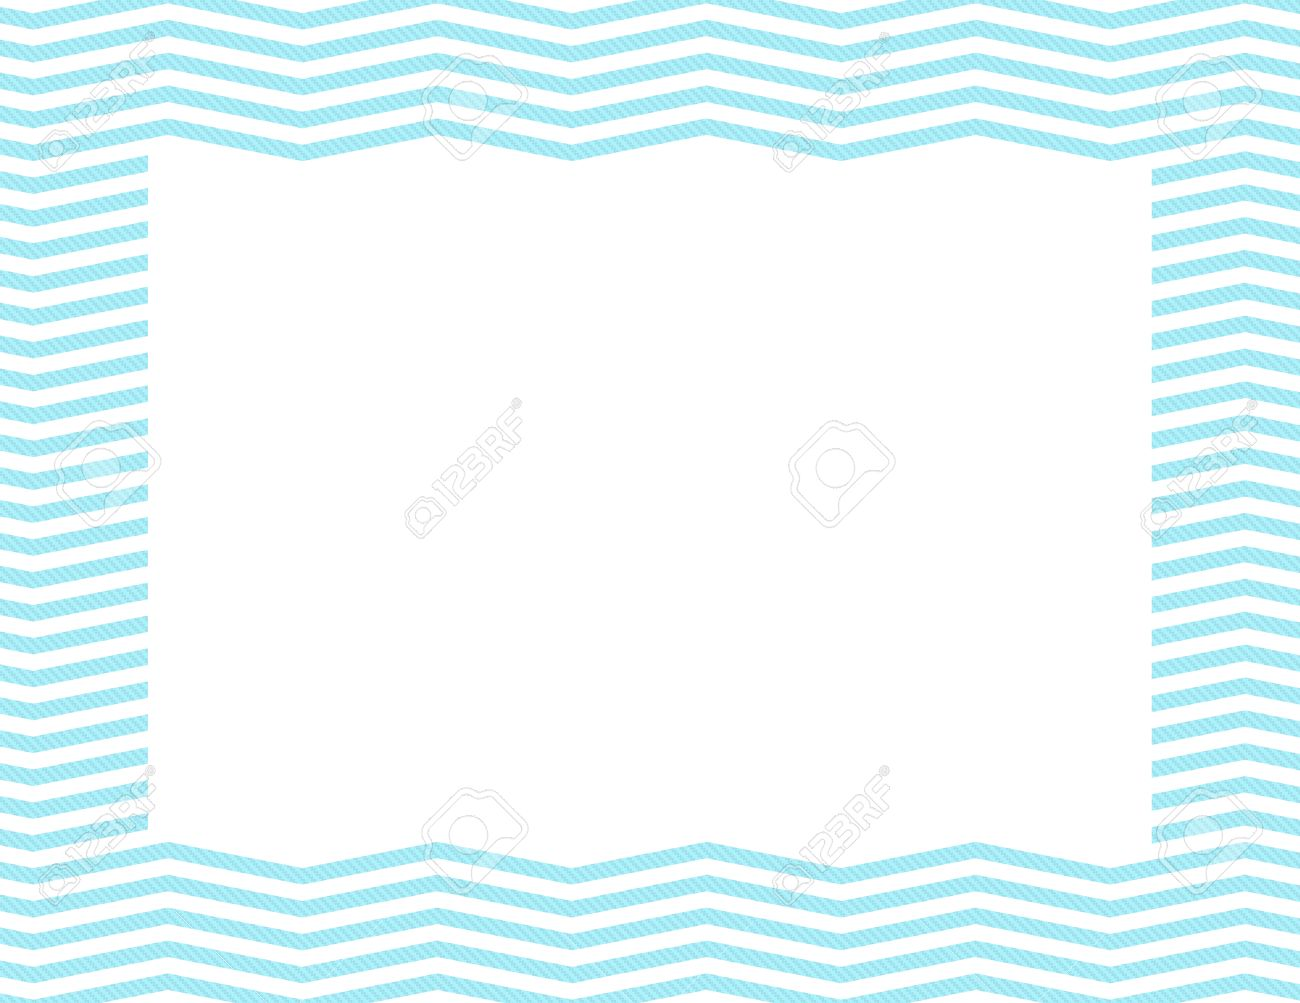 Teal Chevron Frame Background With Center Isolated For Copy Space Stock Photo Picture And Royalty Free Image Image 25079636